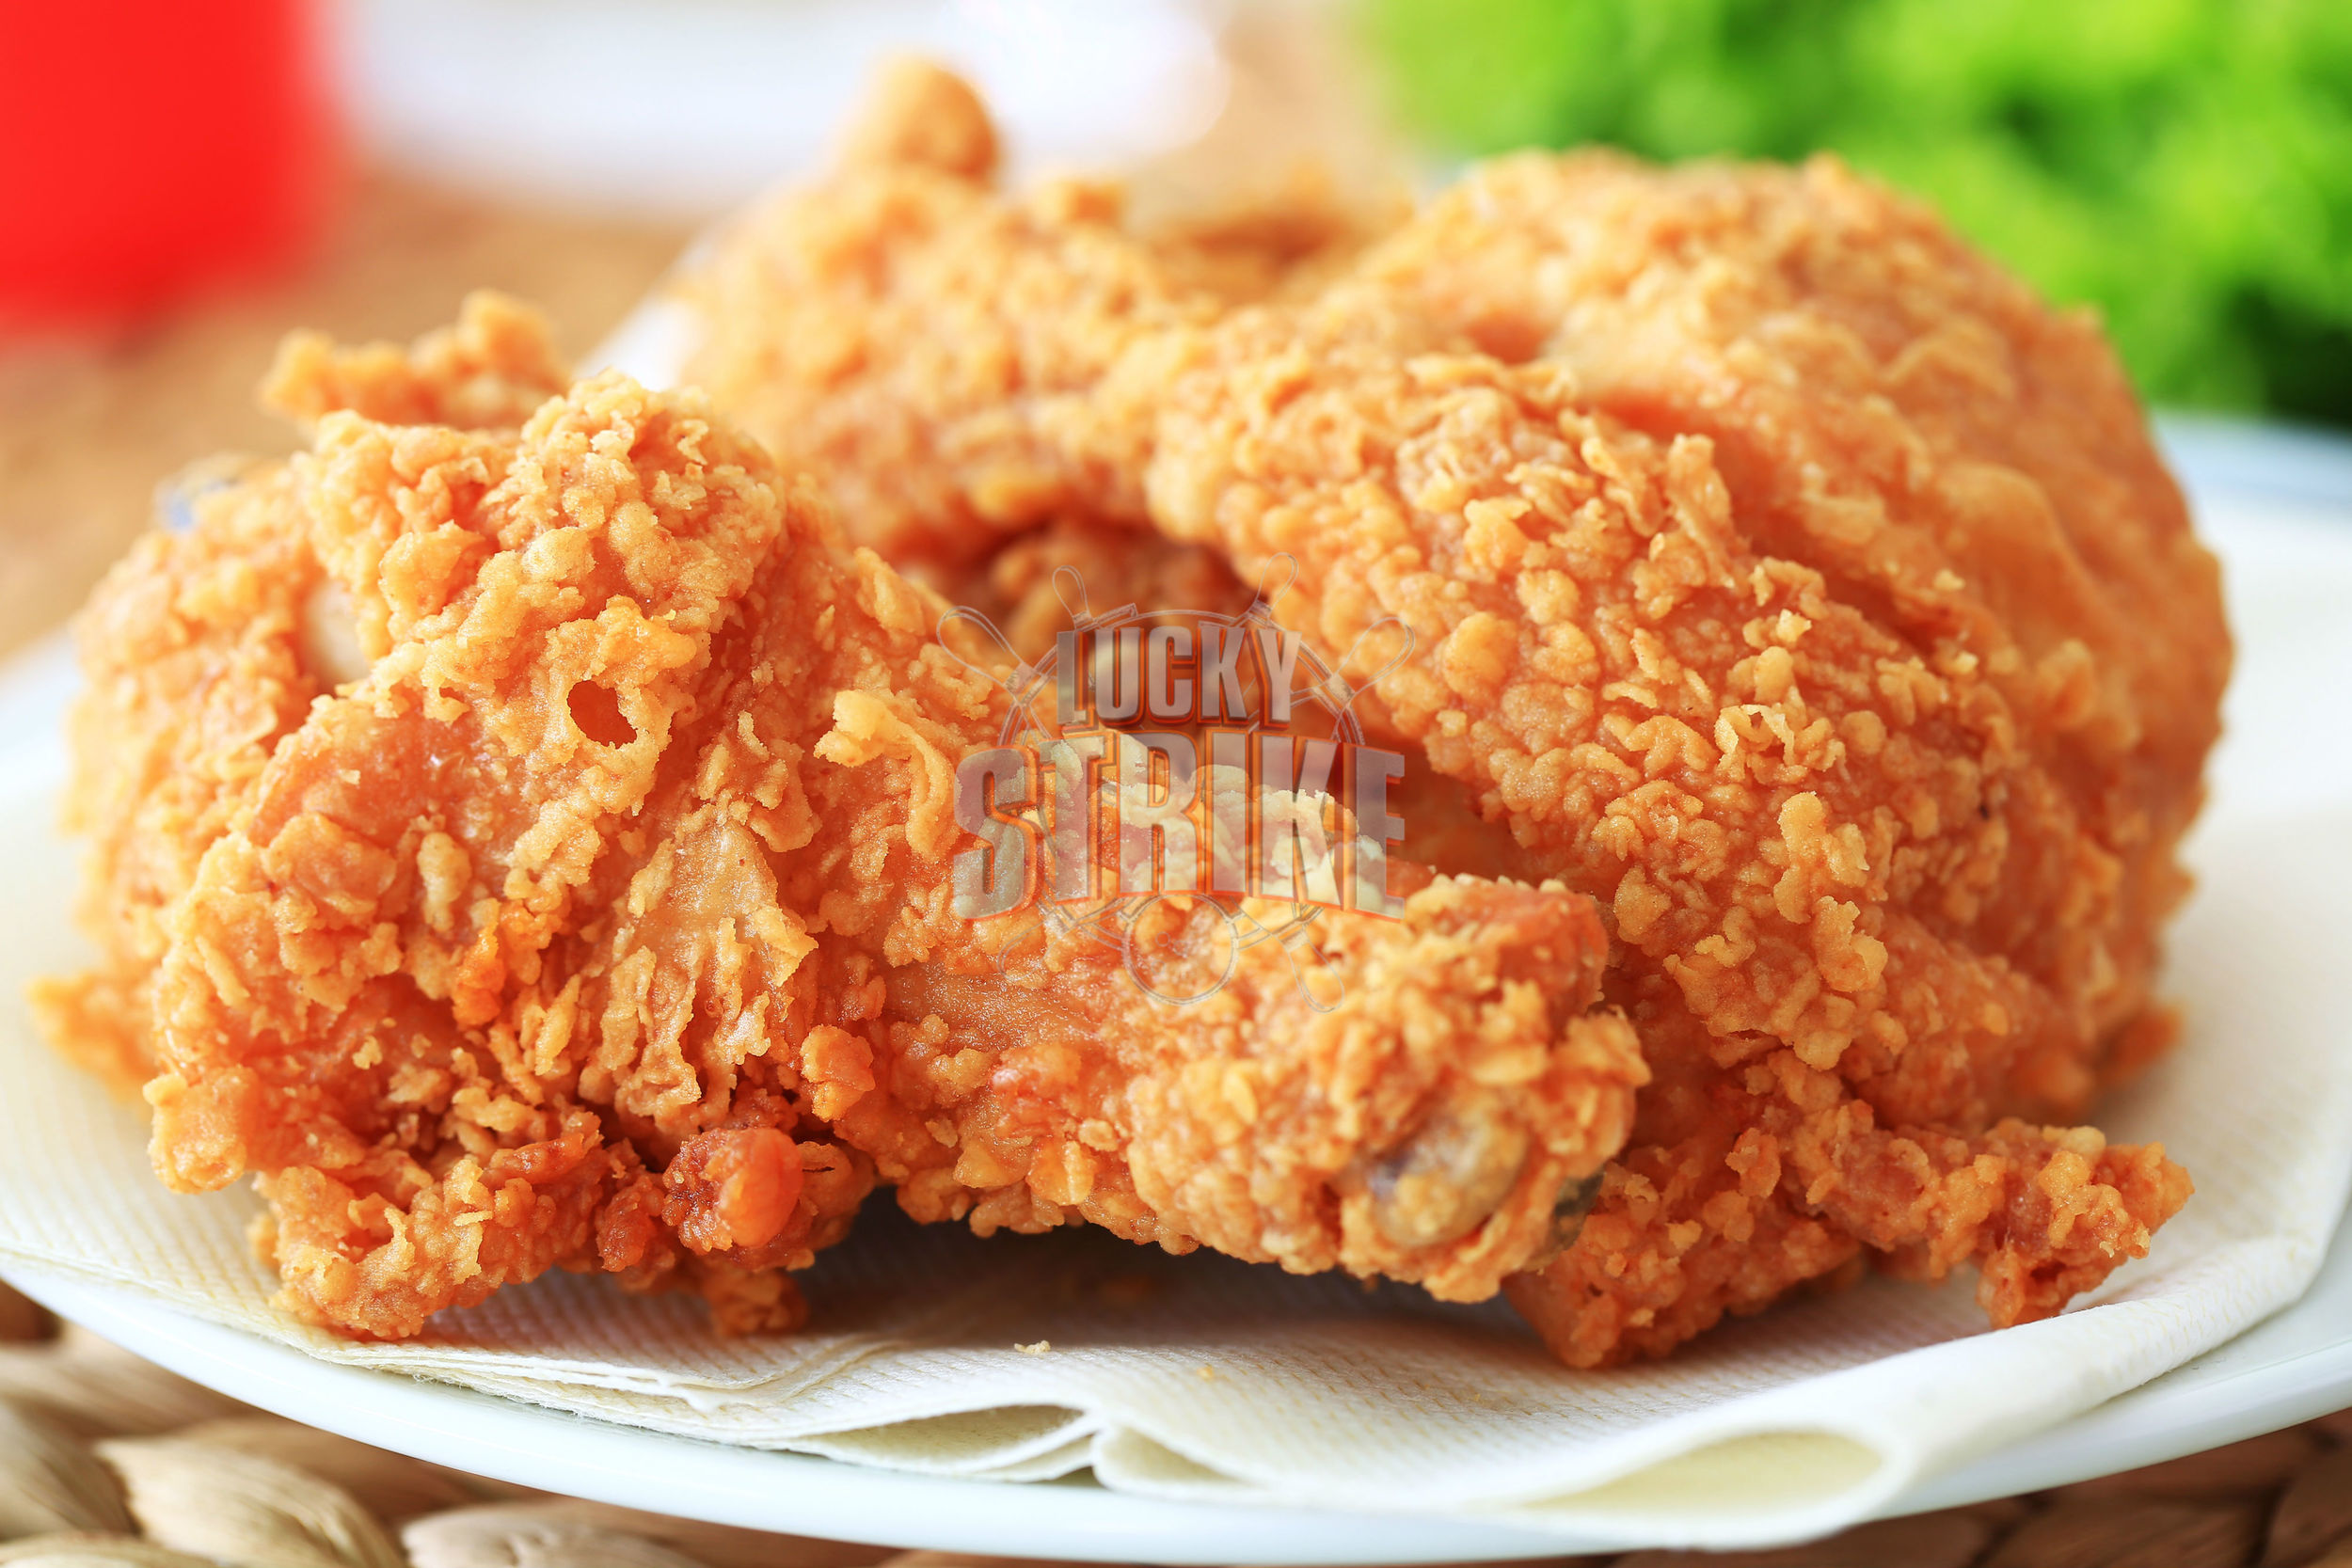 CHICKEN WINGS                                                                                                45/25                       Enjoy 12 or 6 tender, crispy and juicy fried chicken wings served with ranch & hot sauce